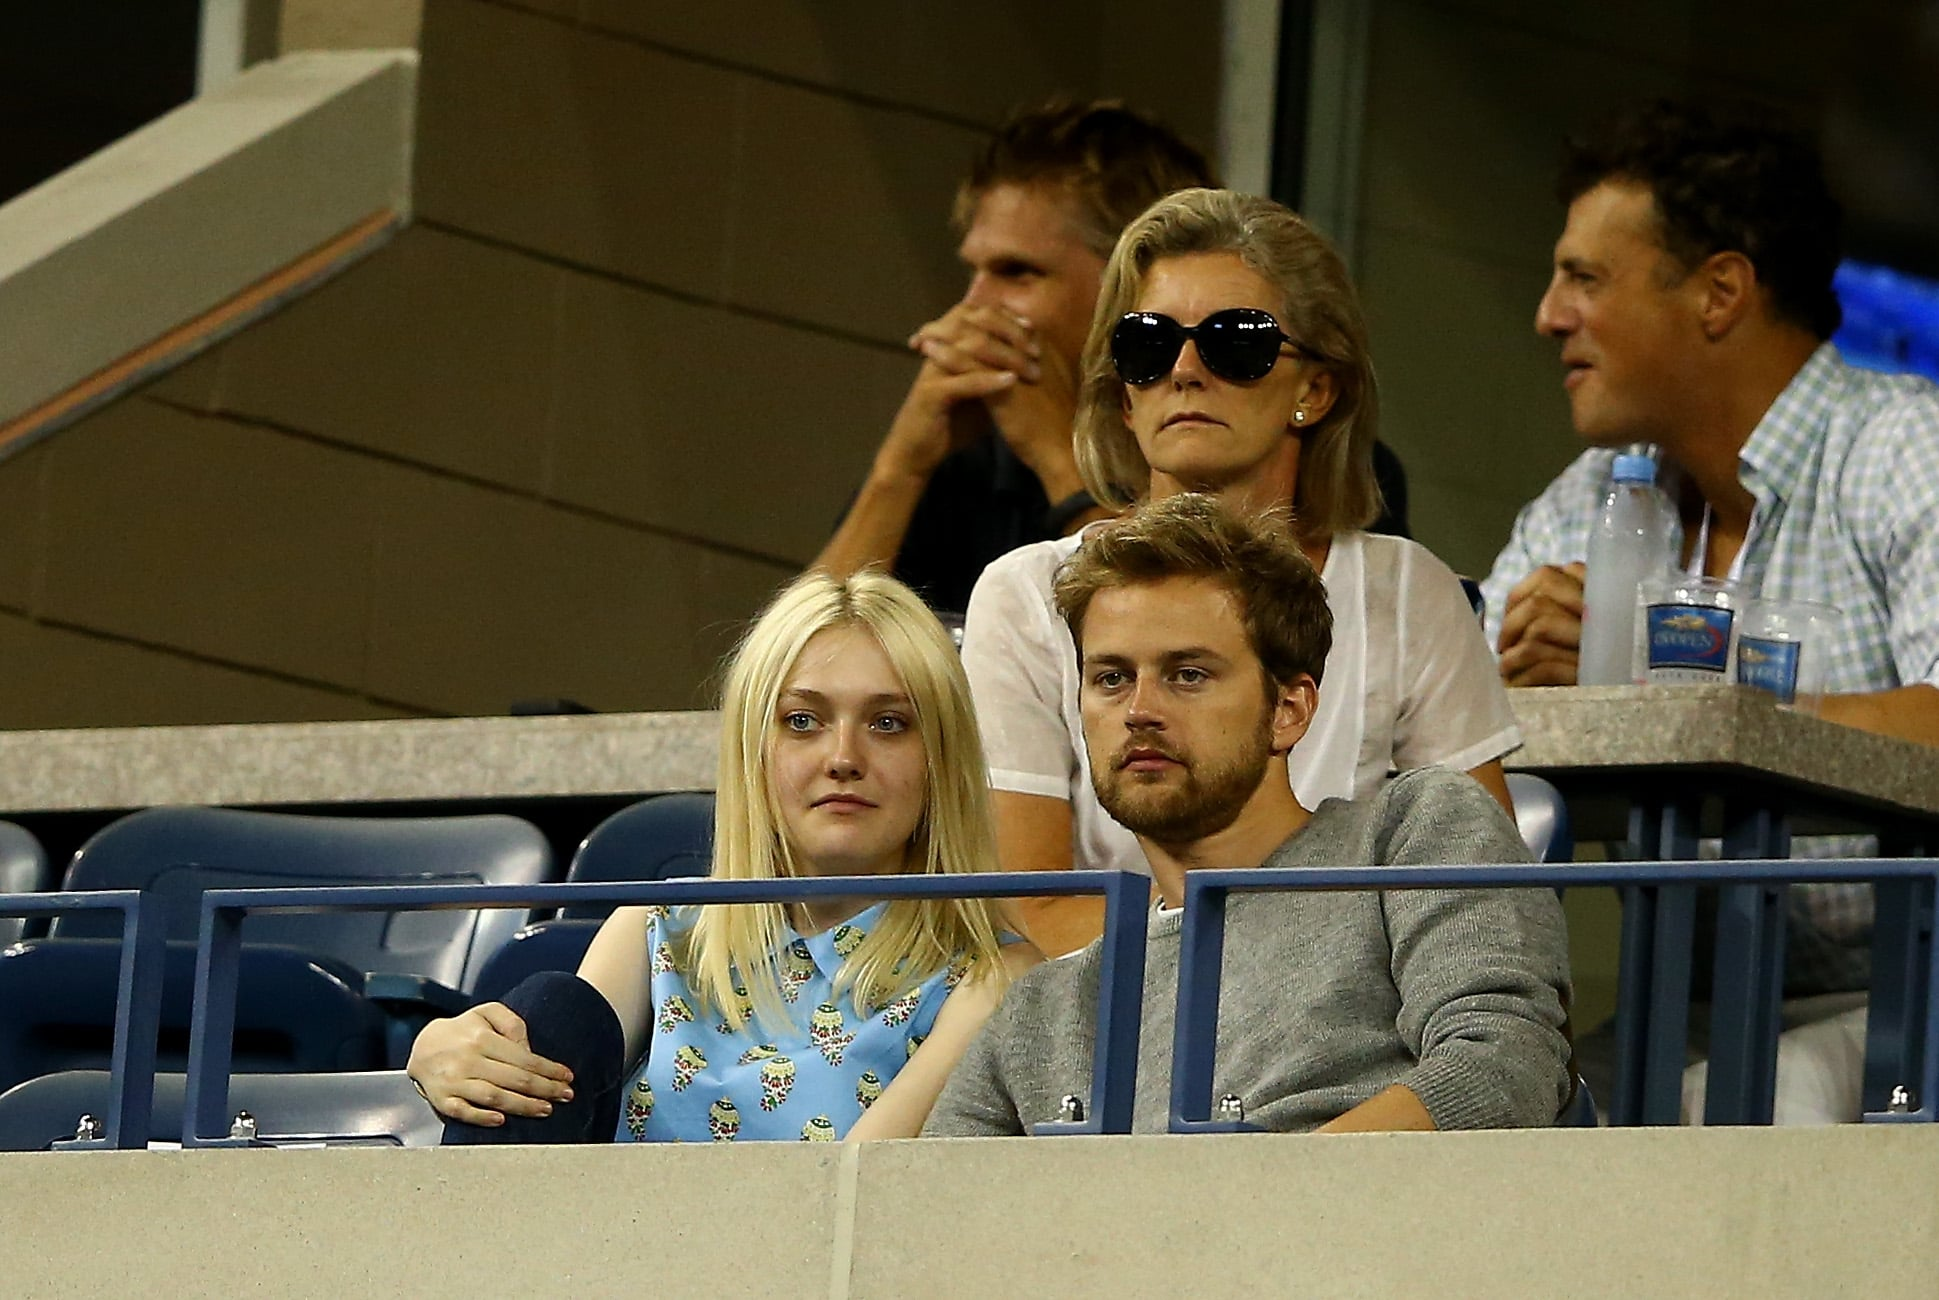 Dakota Fanning and her boyfriend, Jamie Strachan, cozied up in the stands of the US Open.